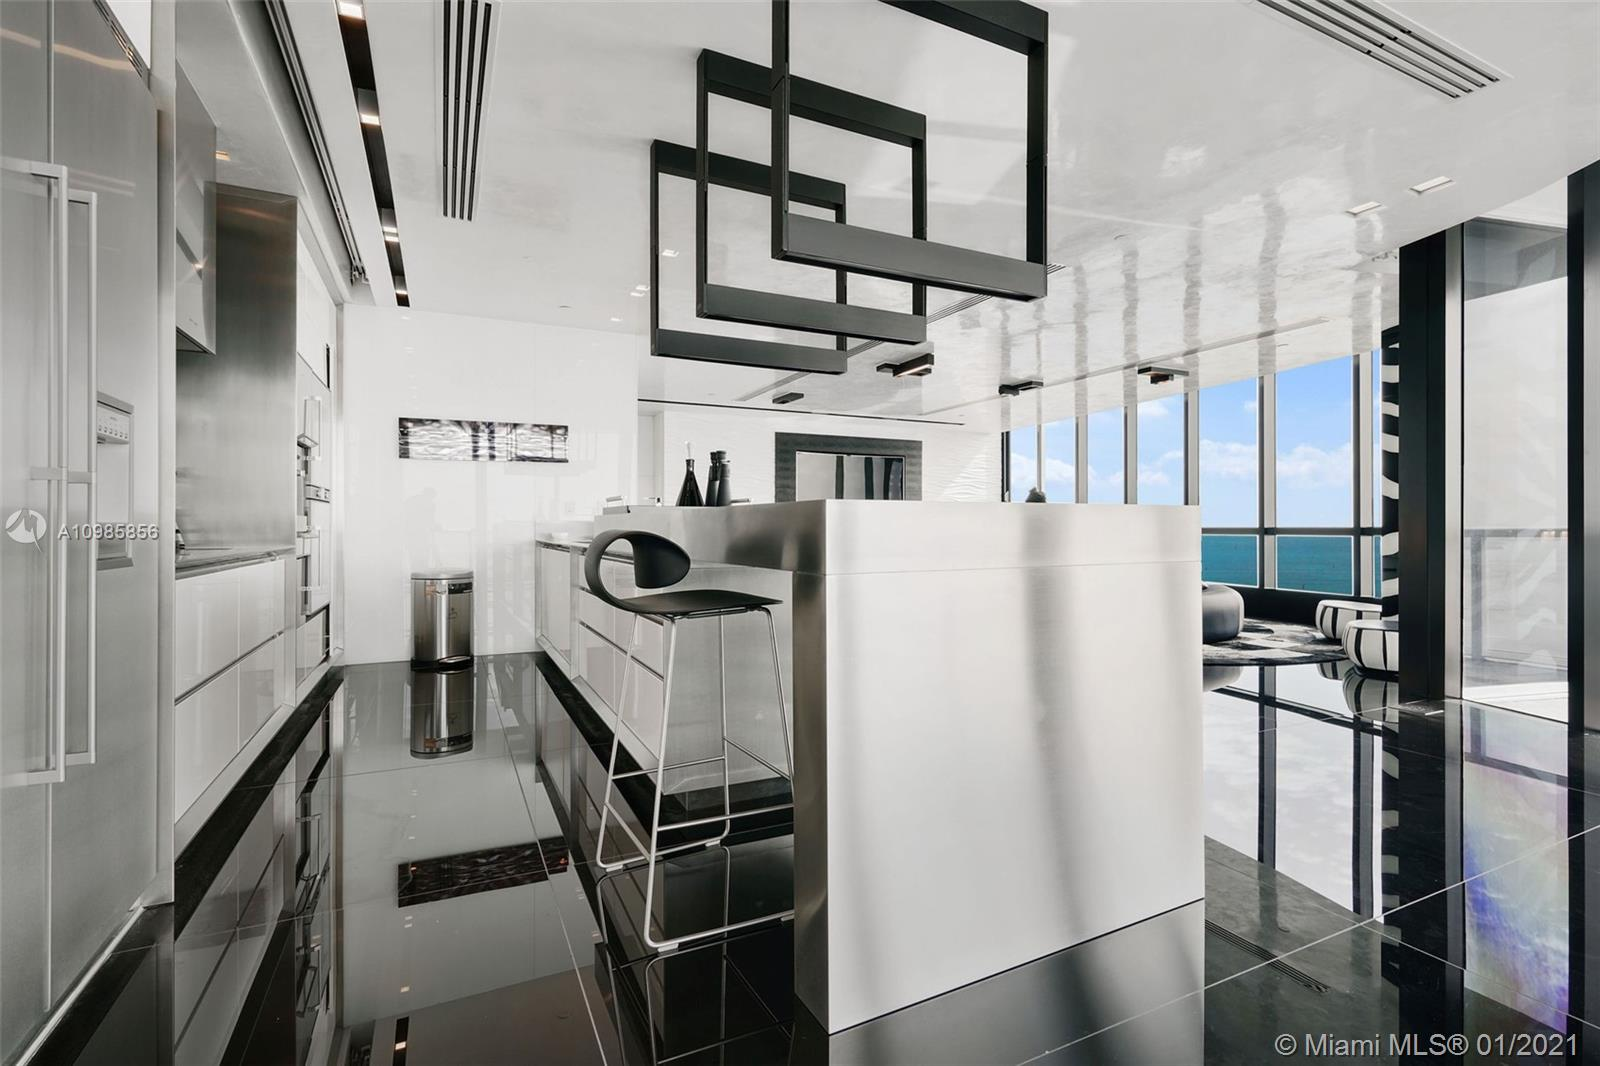 Most desirable southwest corner of the Continuum on South Beach, south tower.  This high floor spacious home has been fully updated with the utmost attention to detail.  The customized furniture and decoration is included and ready for immediate occupancy.  Brilliant unobstructed views of the Ocean, Miami Skyline, Fisher Island and Government Cut. Enjoy the amenities of Continuum on South Beach: direct beach access, Beach Club, on-site restaurant, 3-story fitness/spa, lagoon pools, lap pool and tennis courts. Located in the south of fifth luxury neighborhood in south beach. Offering ultra high-end condominiums, top rated restaurants, beautiful beaches, the Miami Beach Marina and South Pointe Park.